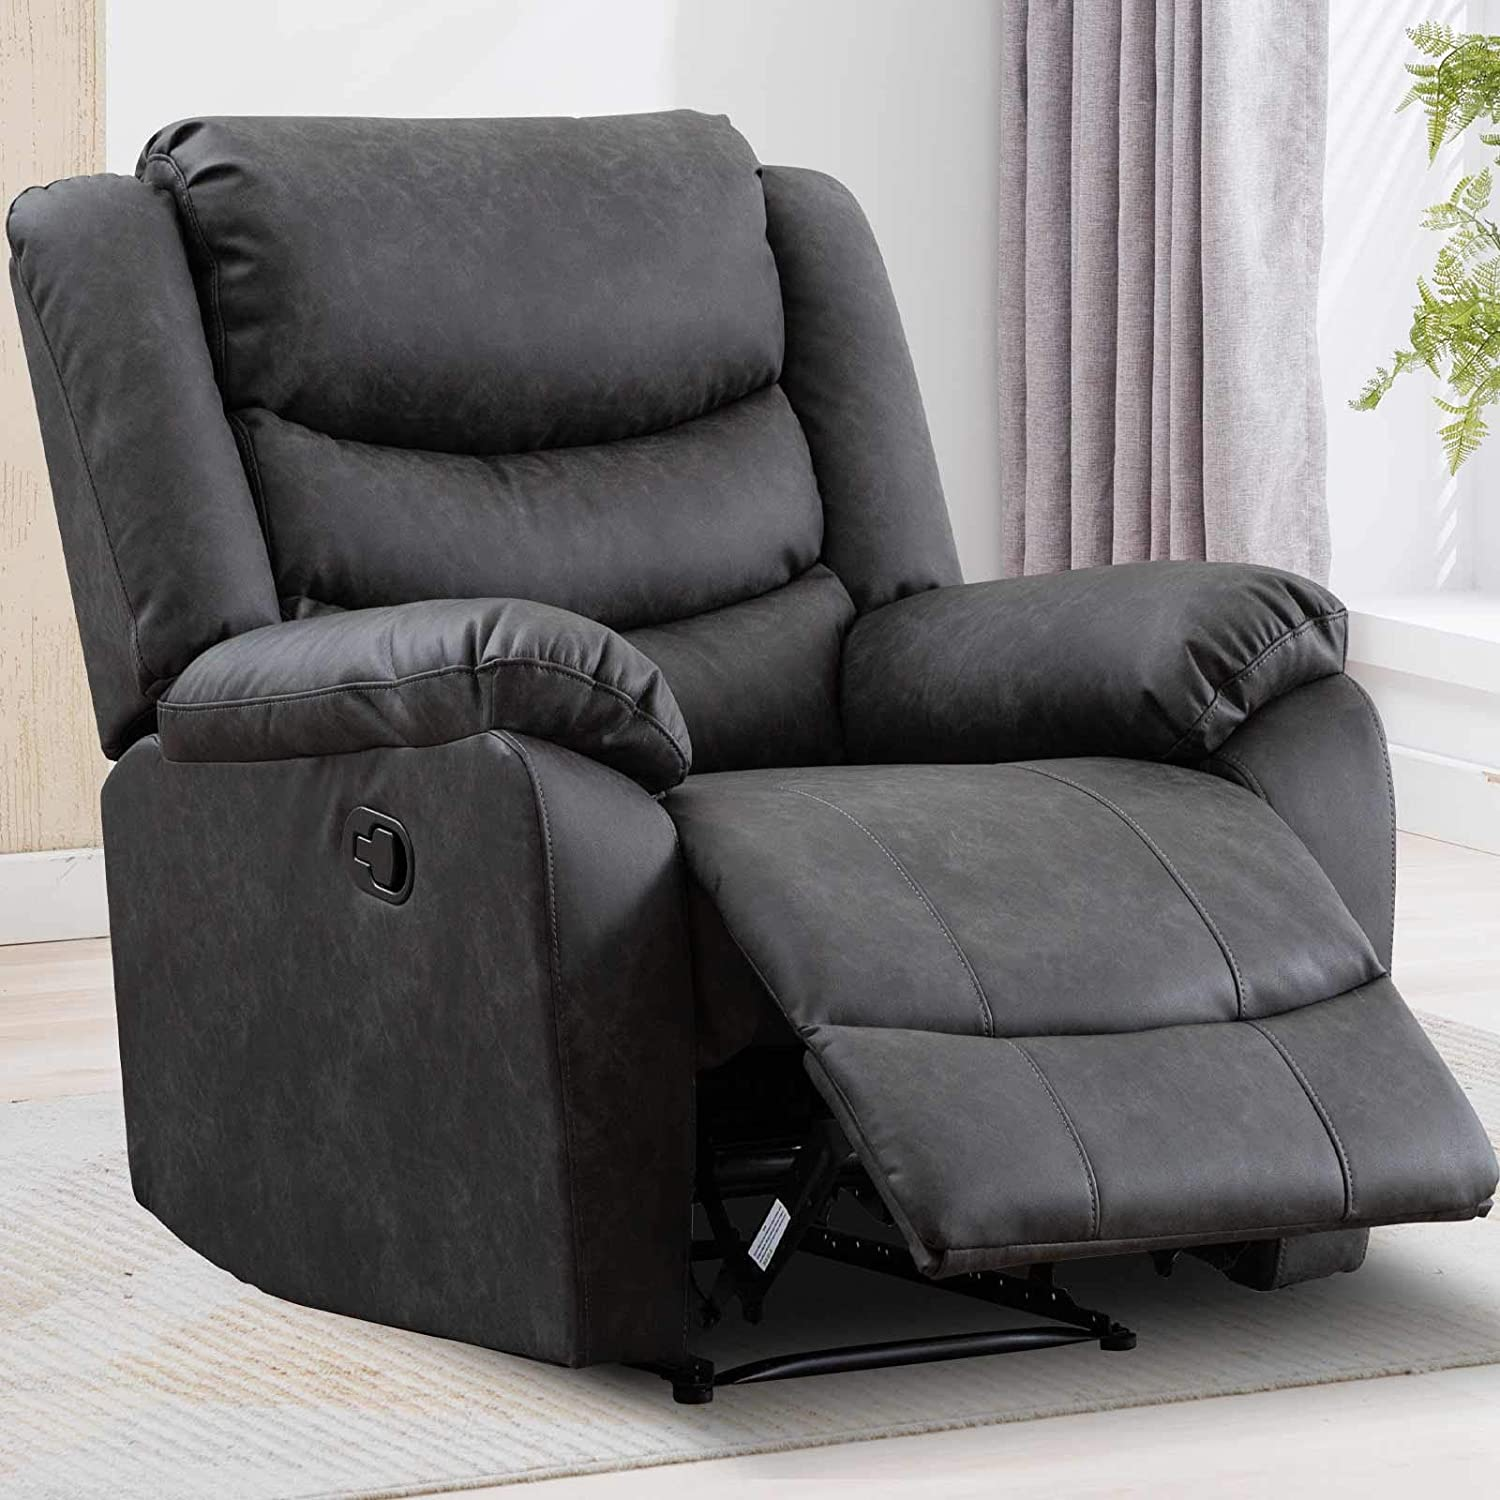 ANJ HOME Recliner Chair with Overstuffed Arm and Back, Classic Recliner Single Sofa Home Theater Seating (Gray)